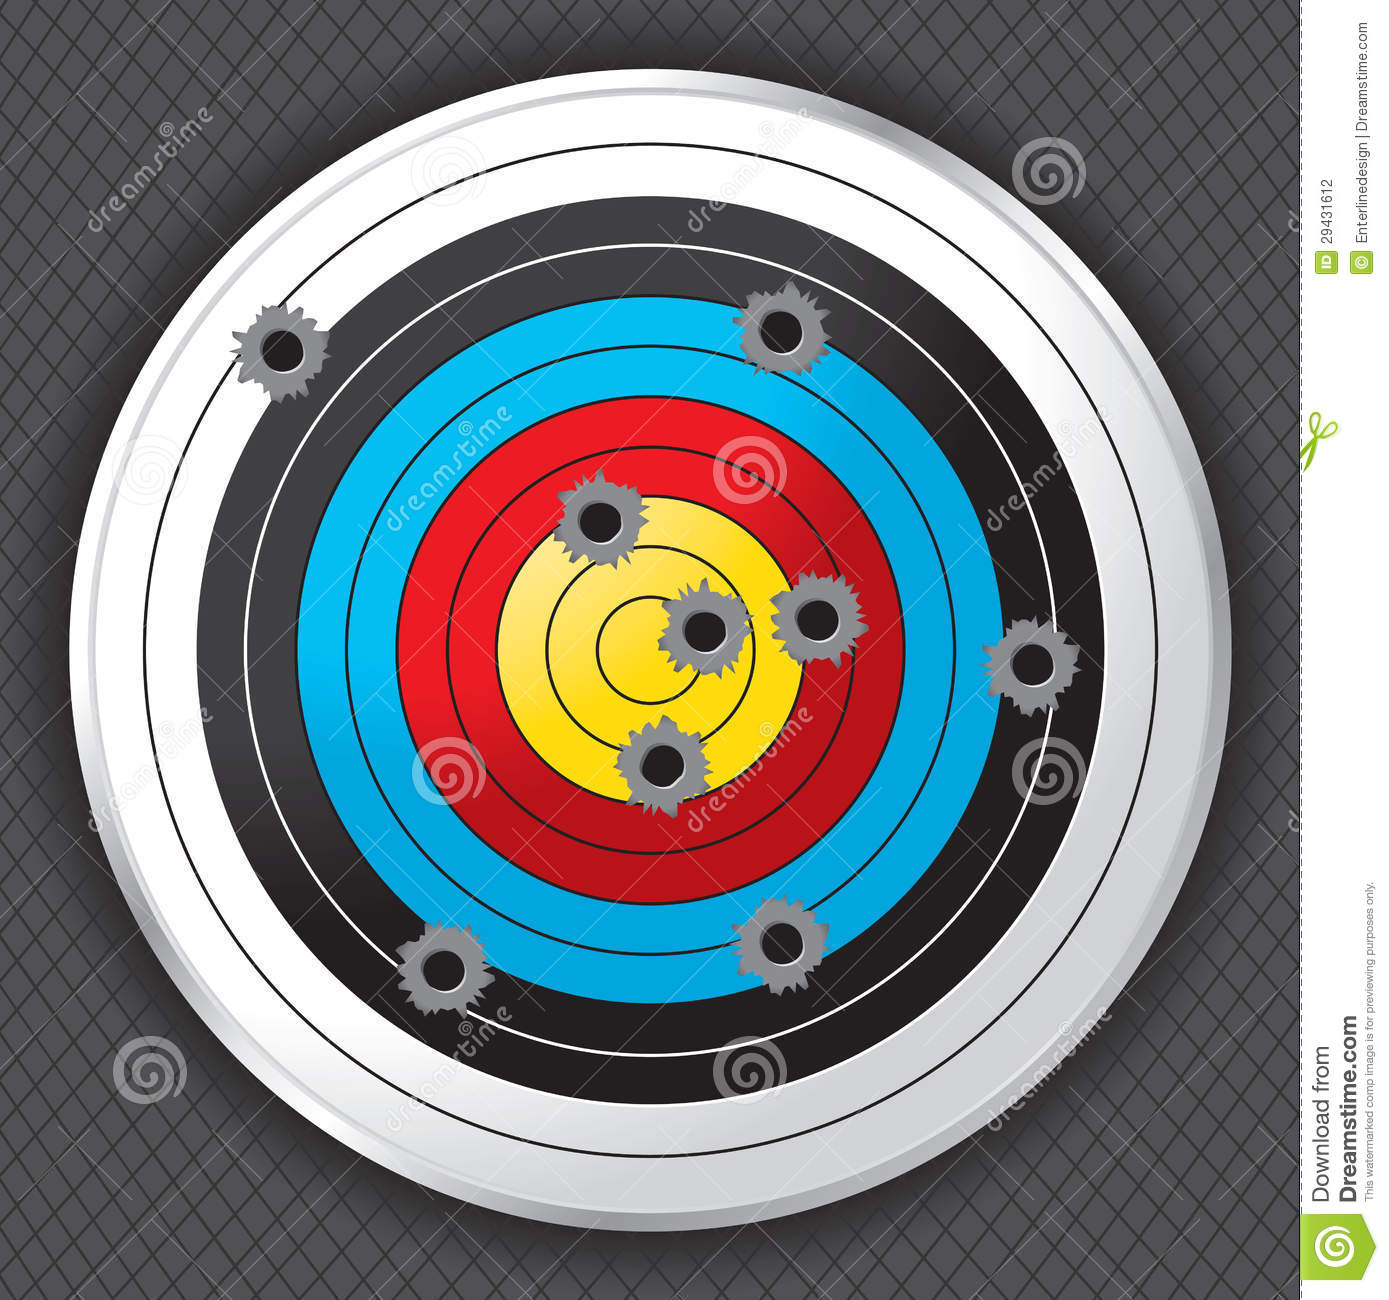 Shooting Range Gun Target With Bullet Holes Stock Photography - Image ...